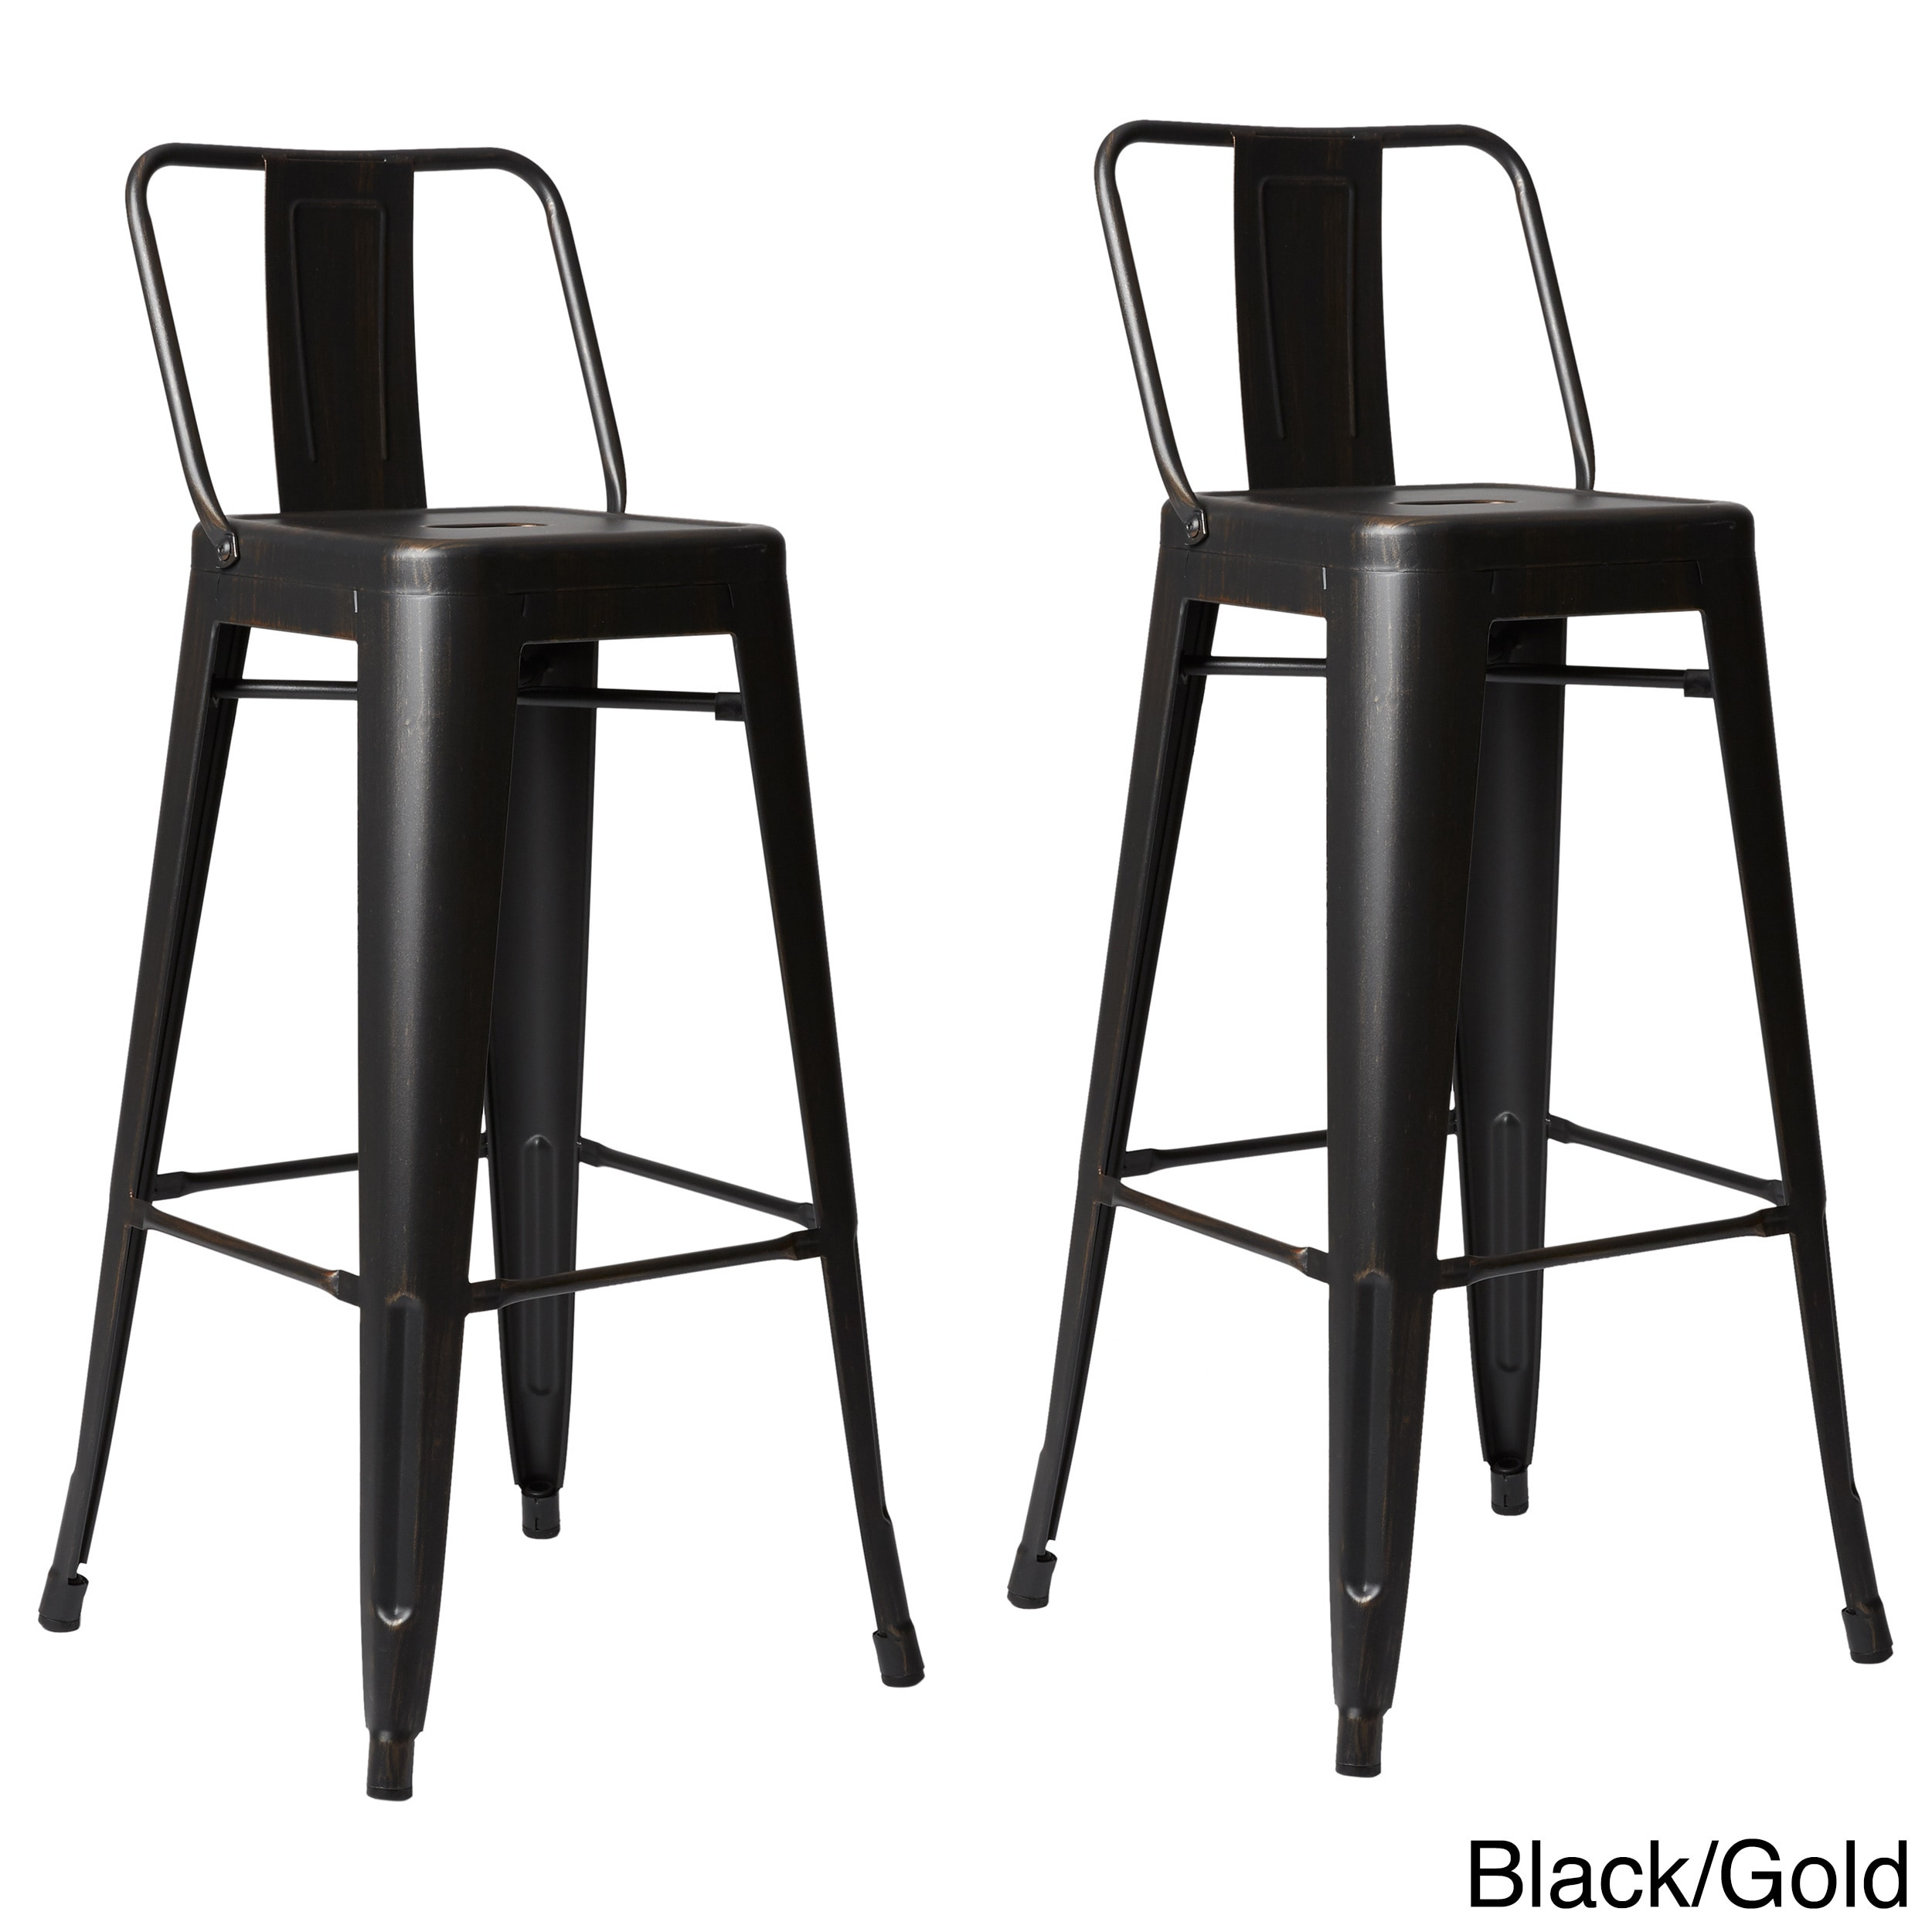 Clay Alder Home Coal Creek Steel 30 Inch Bar Stool (Set Of 2)   Free  Shipping Today   Overstock.com   18638832